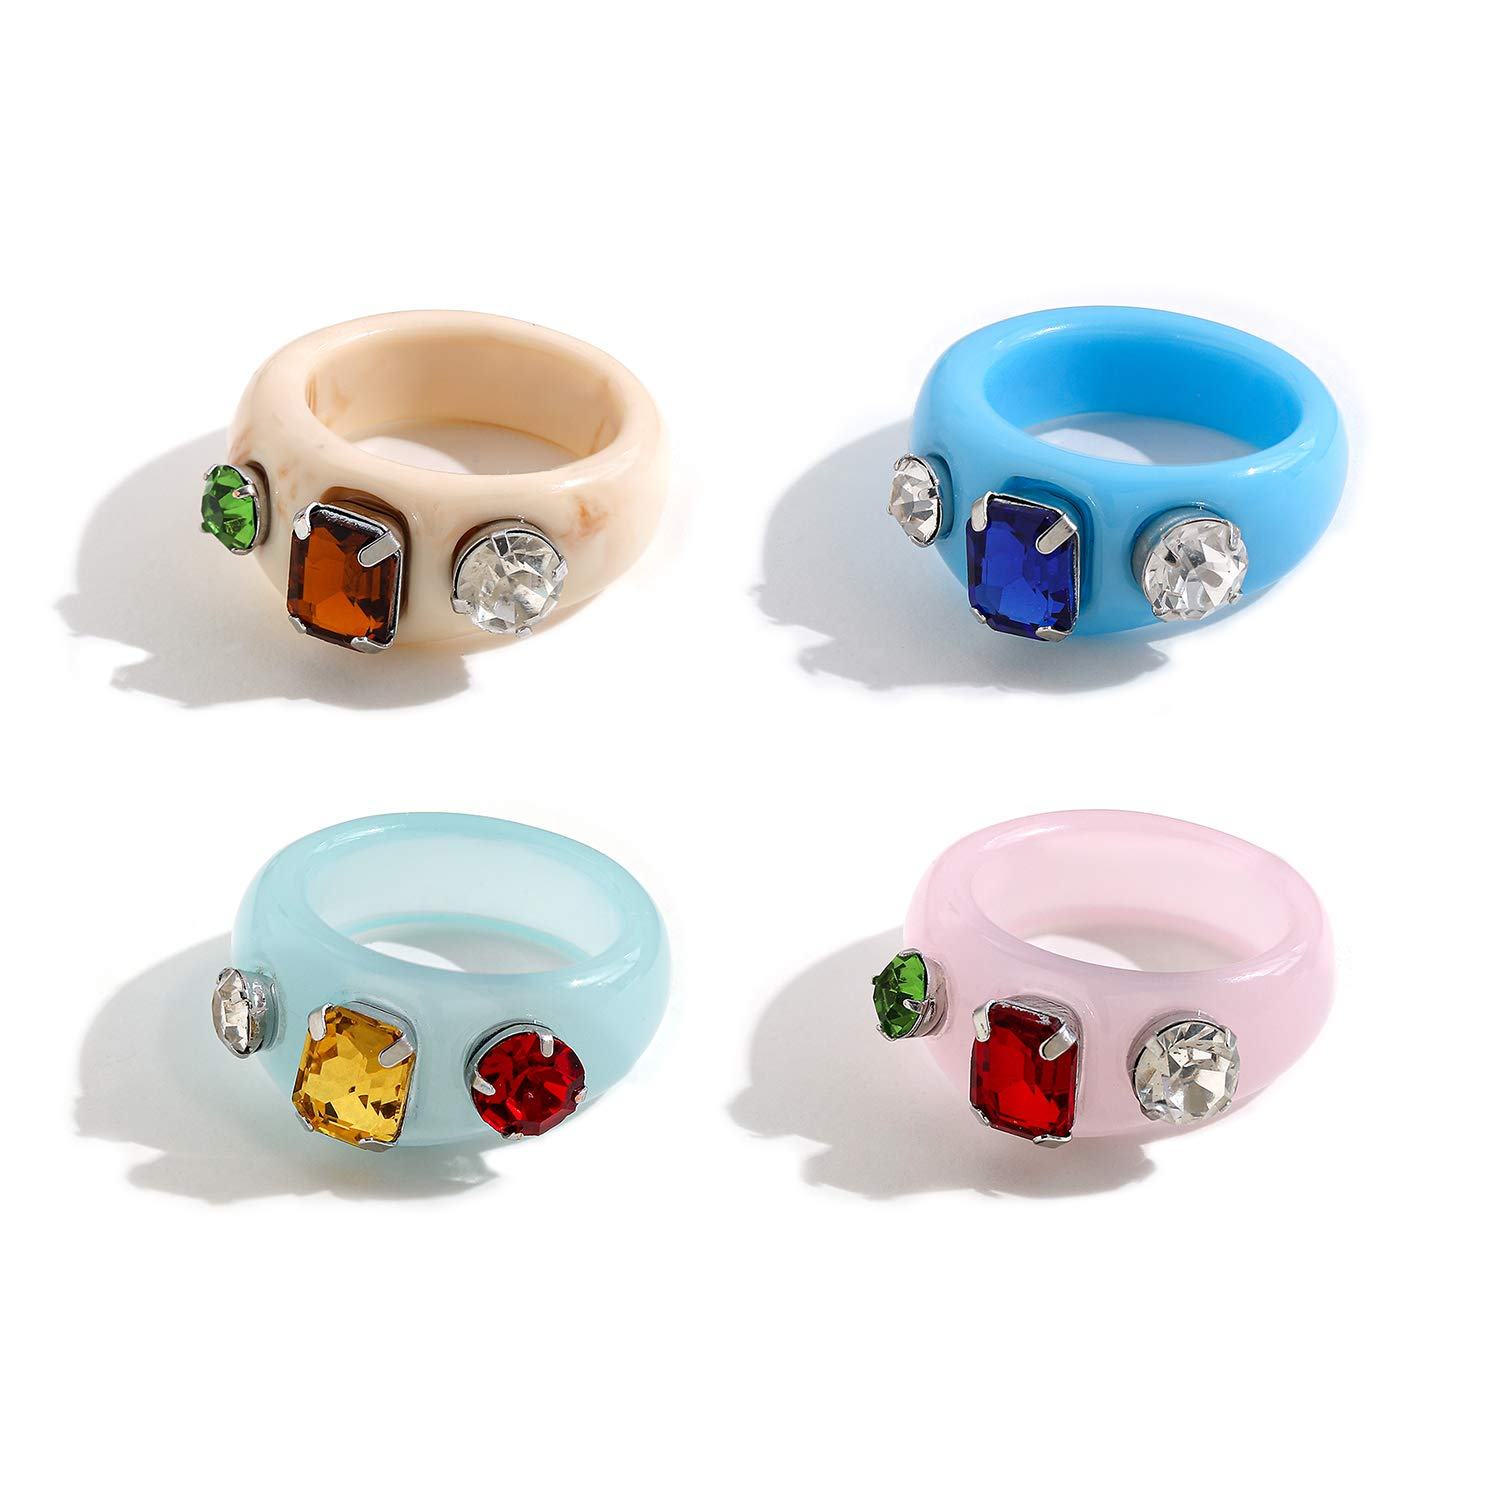 sloong 4pcs Y2K Style Chunky Retro Resin Acrylic Ring Plastic Rings Kids Ring Cute Colorful Candy Ring Finger Ring Jewelry Transparent Handmade Trendy Rings for Women Girls Children